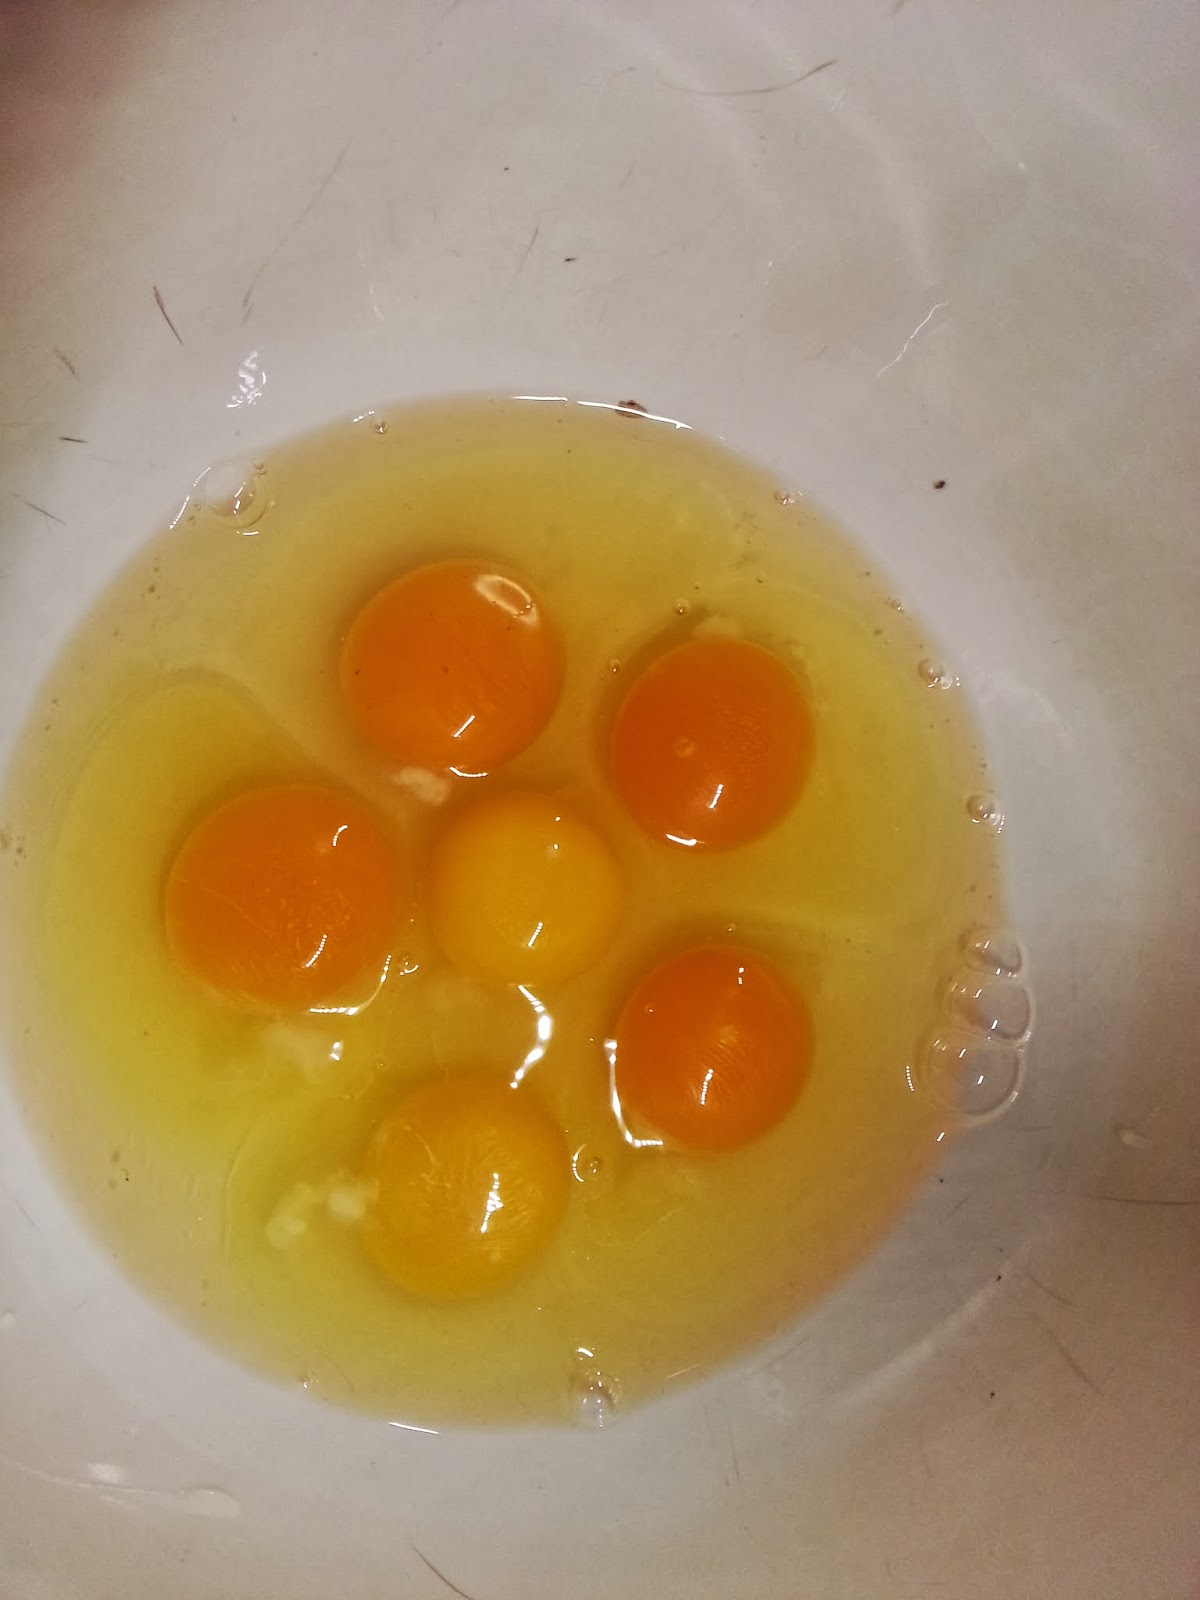 Comparing eggs from store and our chickens